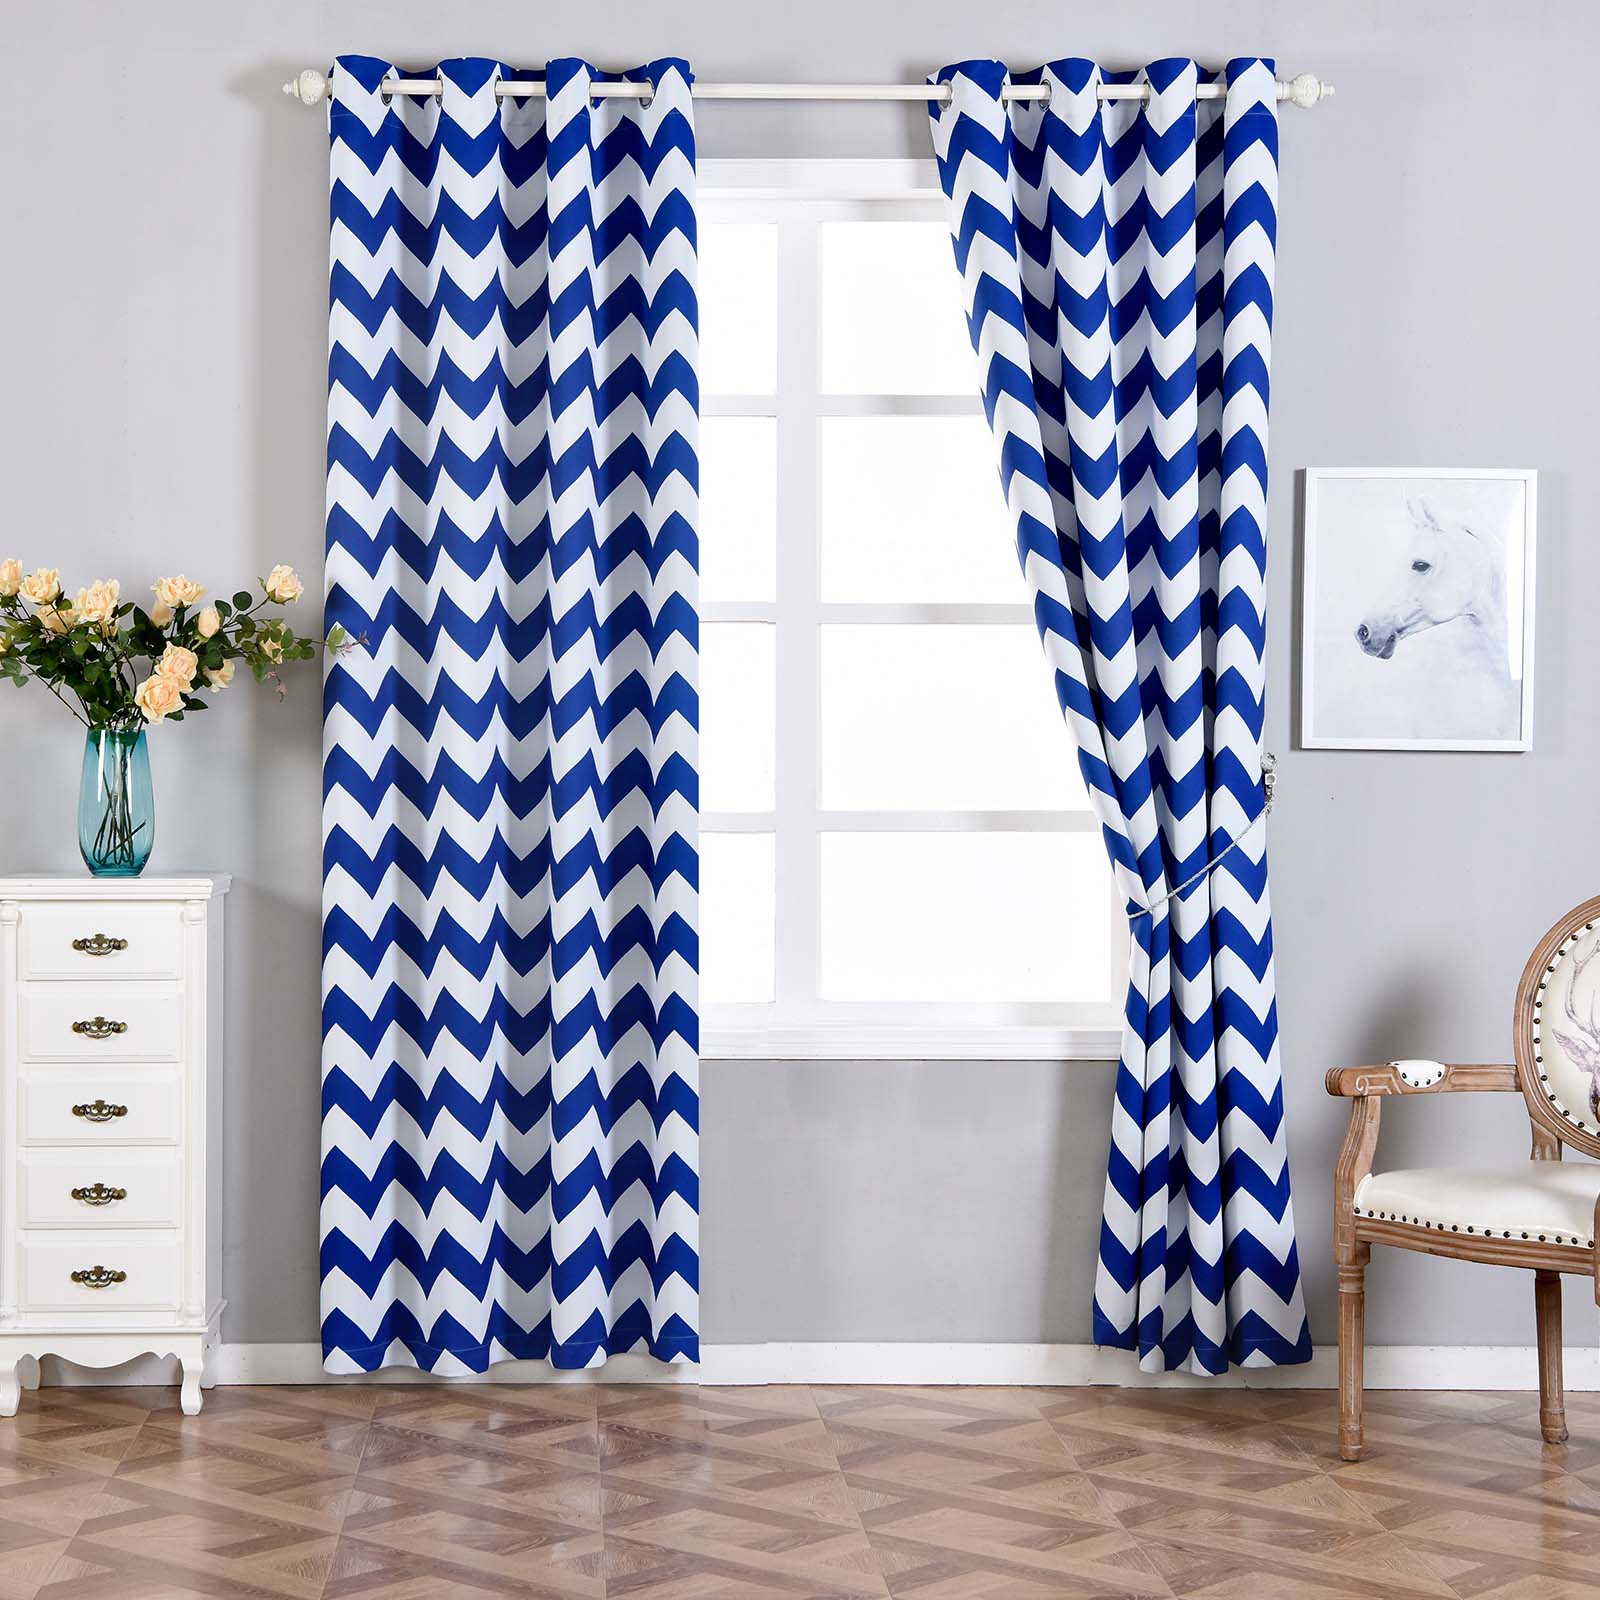 taffeta royal silk faux curtains curtain blue blackout ptpch printed delft